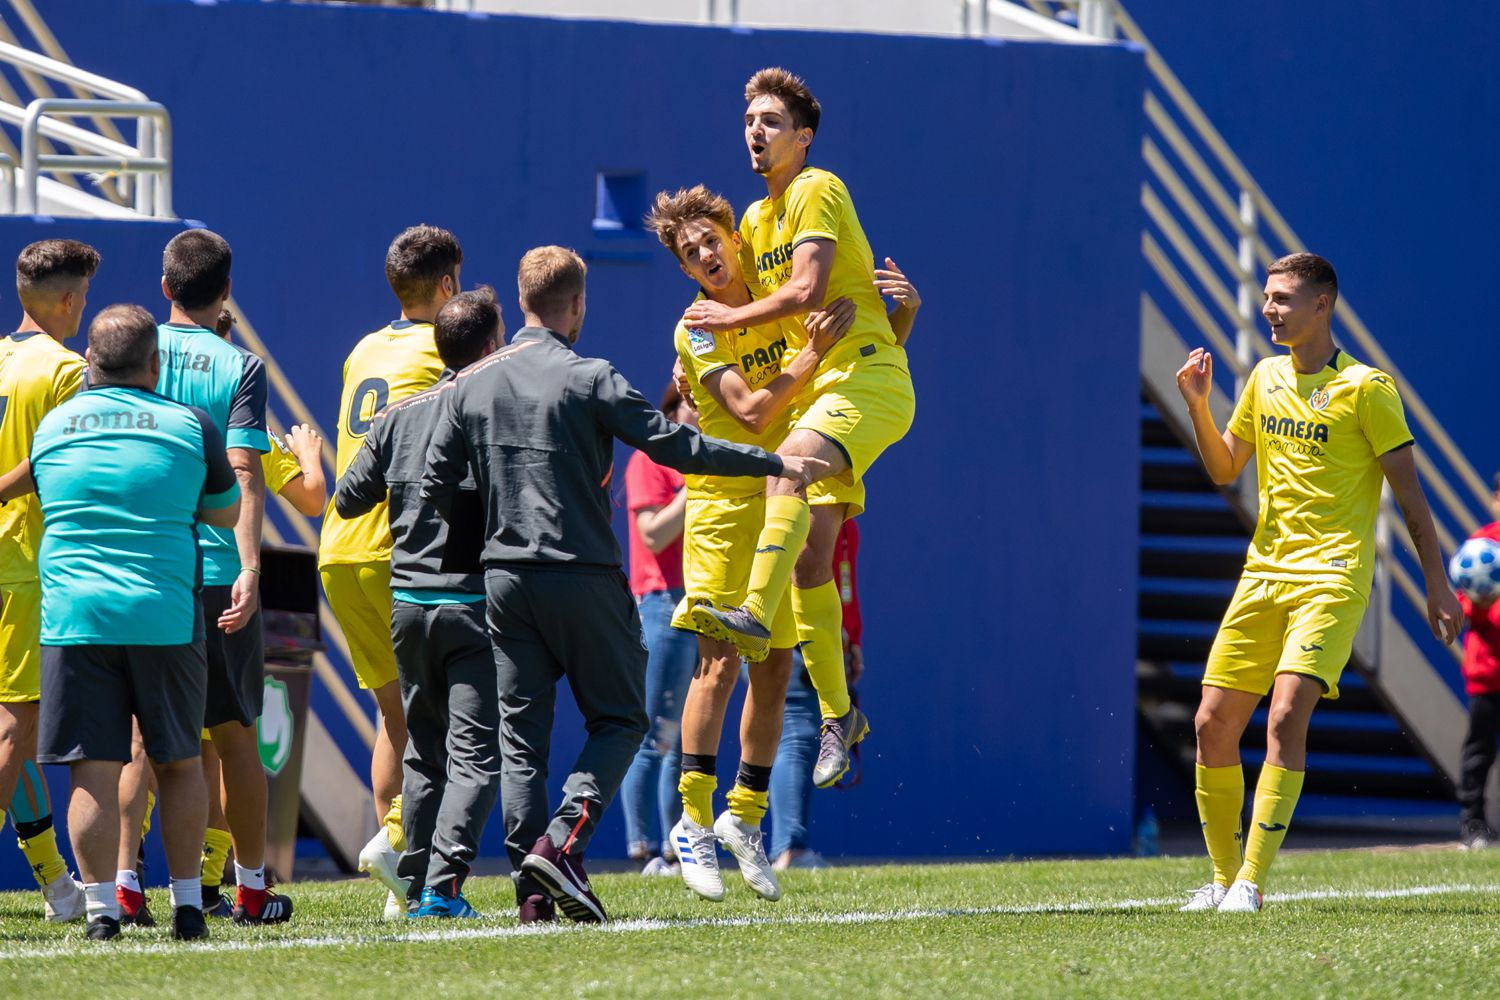 DALLAS, TX - APRIL 14: during the Dallas Cup Super Group soccer game between FC Dallas (USA) and Villareal (Spain) on April 14, 2019 at The Cotton Bowl in Dallas, Texas.  (Photo by Matthew Visinsky)